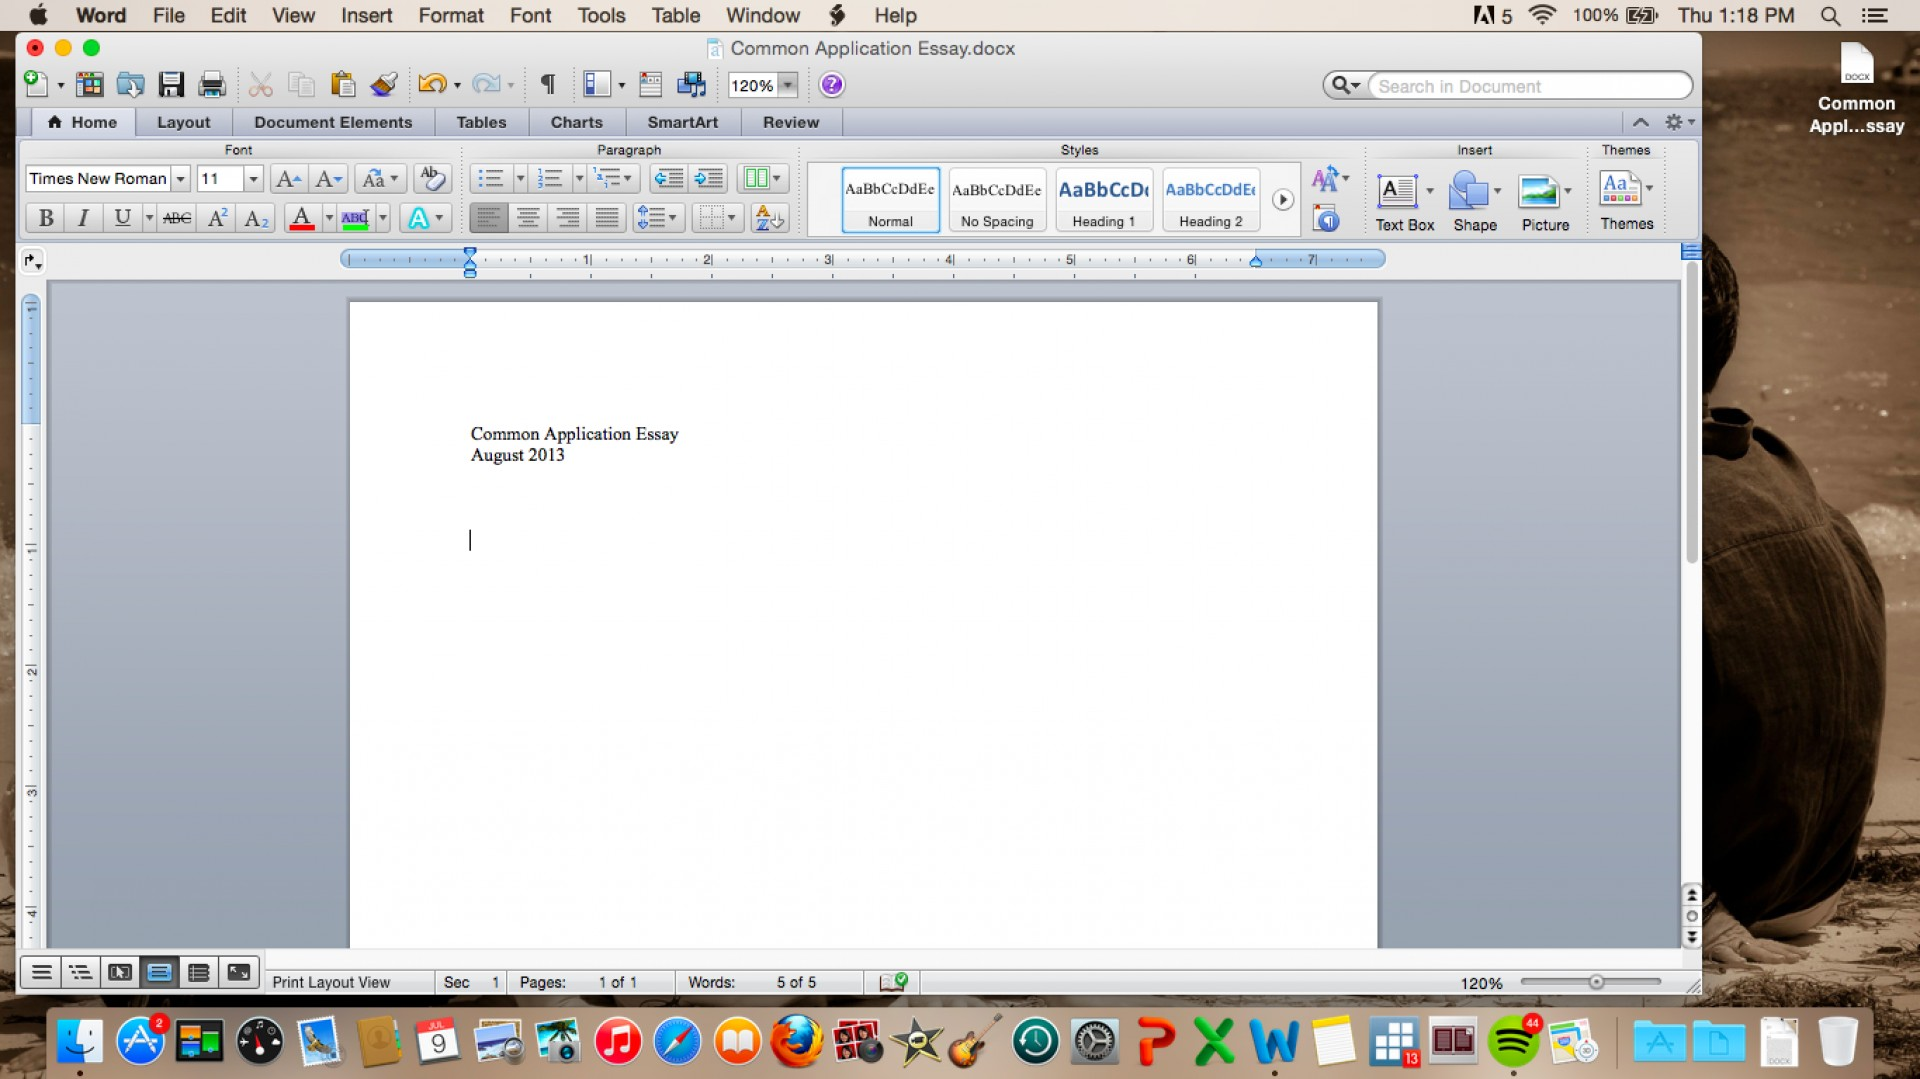 006 Screen Shot 2015 09 At 1 22 Pm Essay Example Harvard Essays That Staggering Worked University Common App Business School 1920